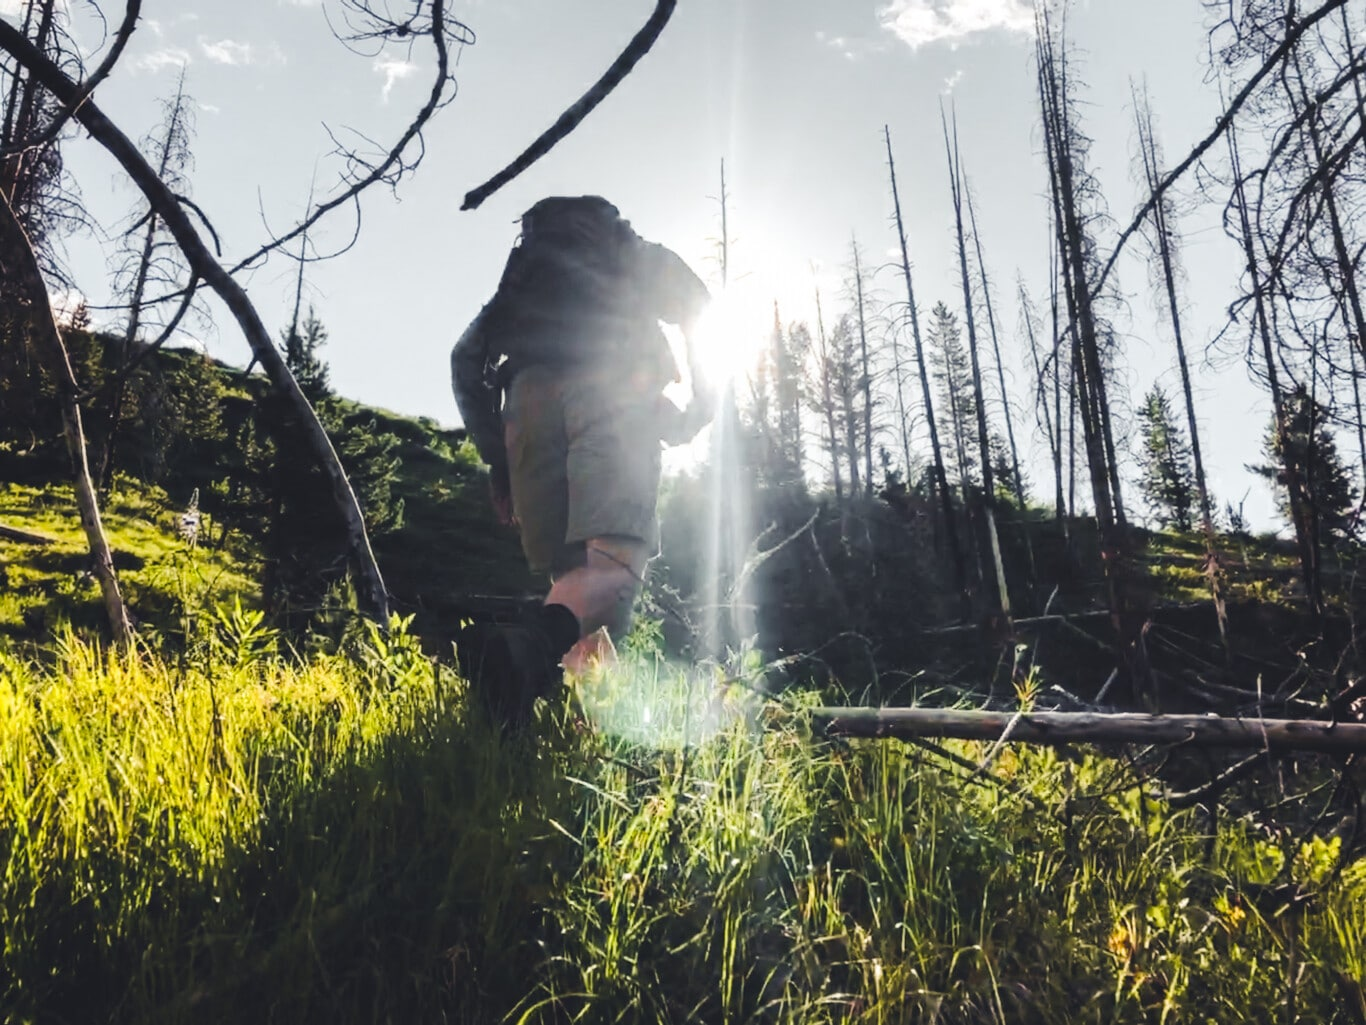 Why We Care About the Bridger-Teton National Forest